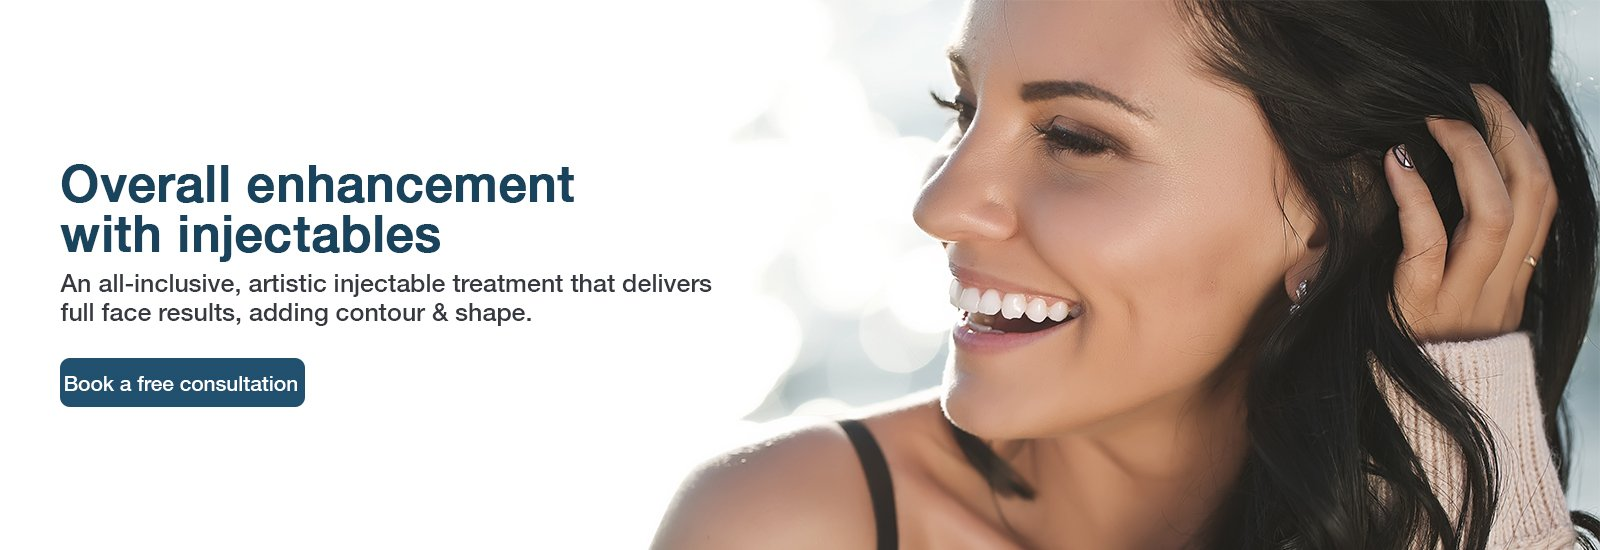 Overall enhancement with injectables